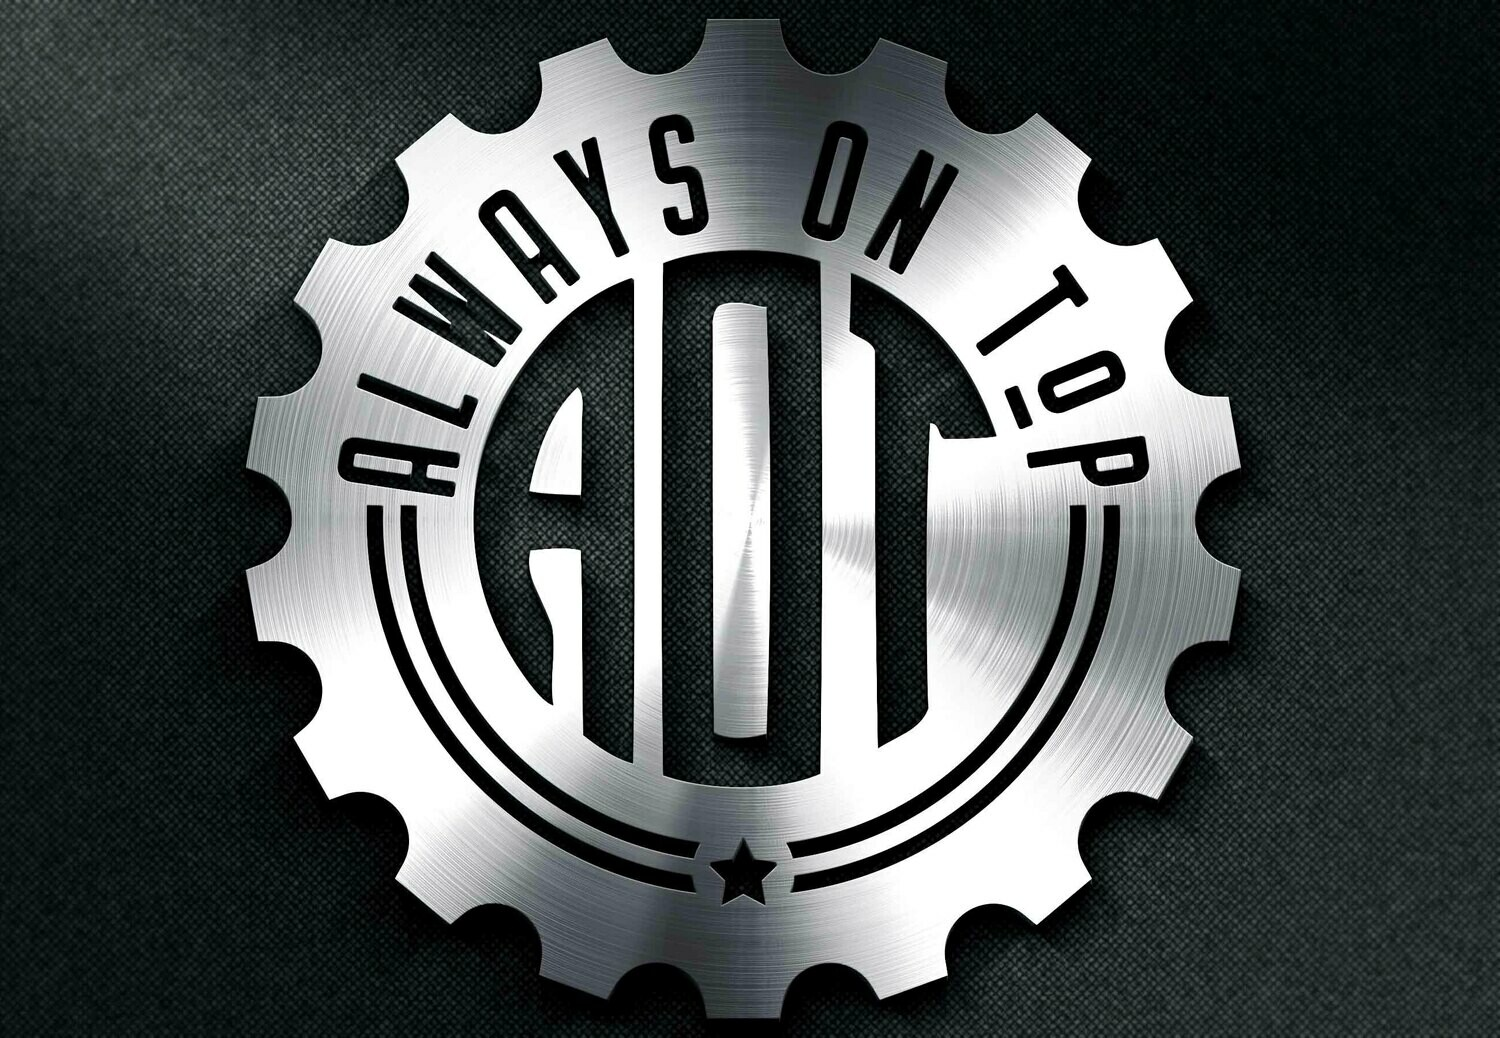 Cog Sticker